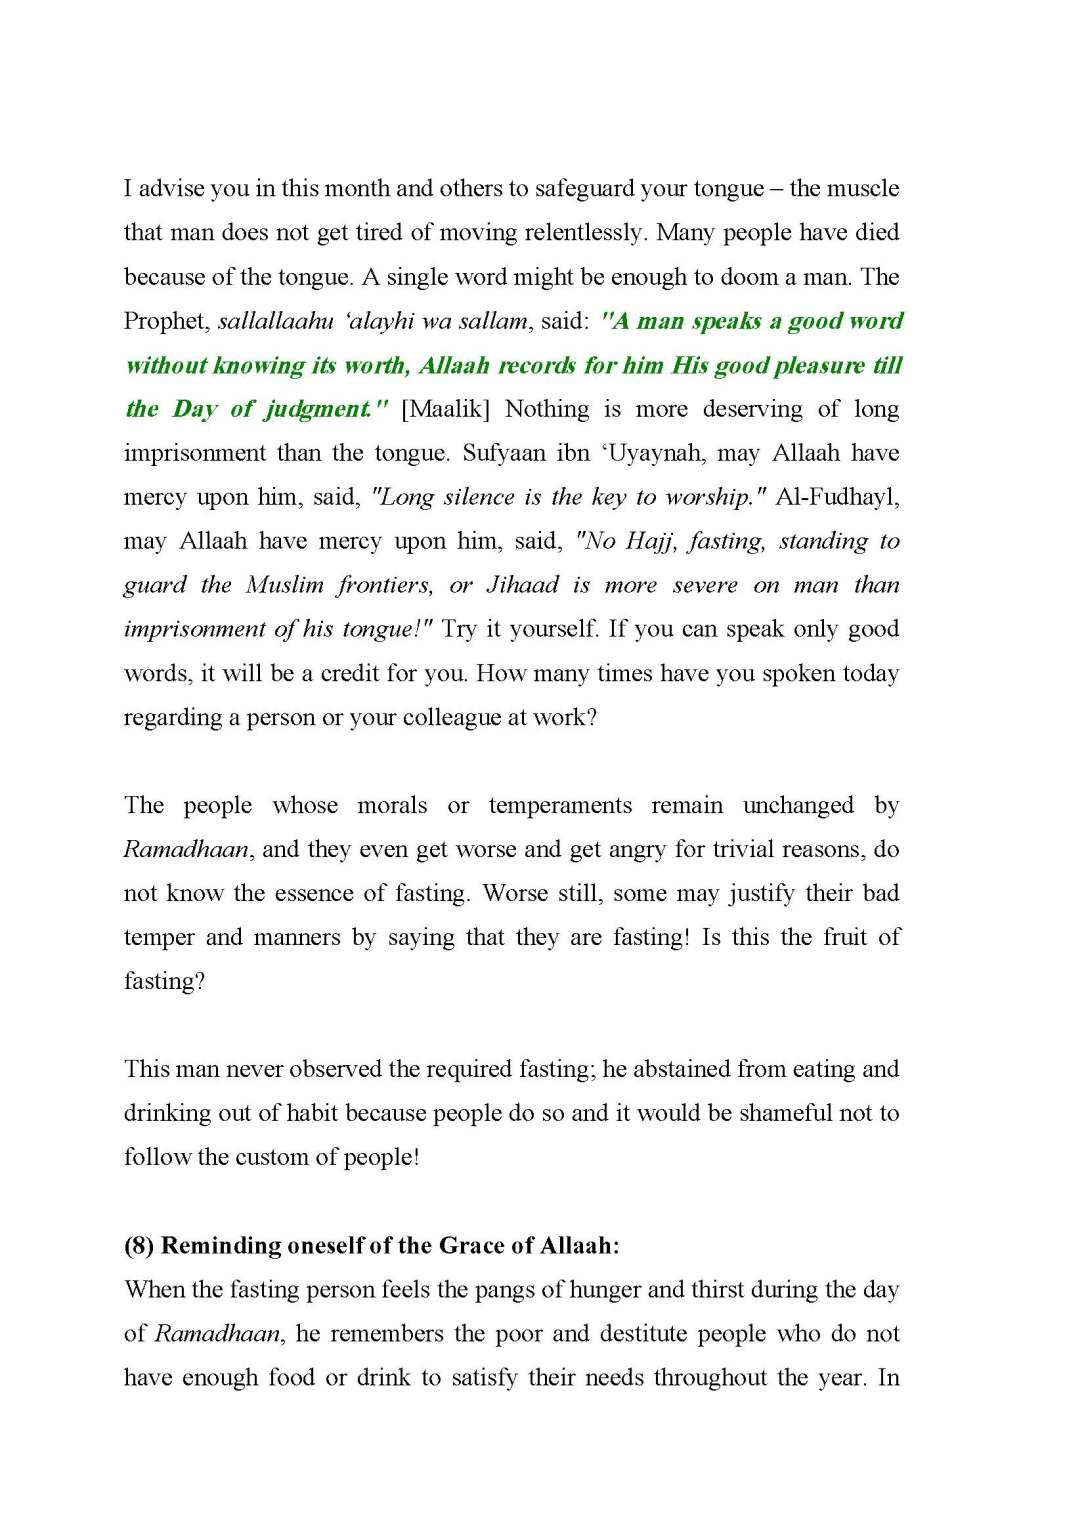 Benefits_and_Secrets_of_Fasting_Page_24